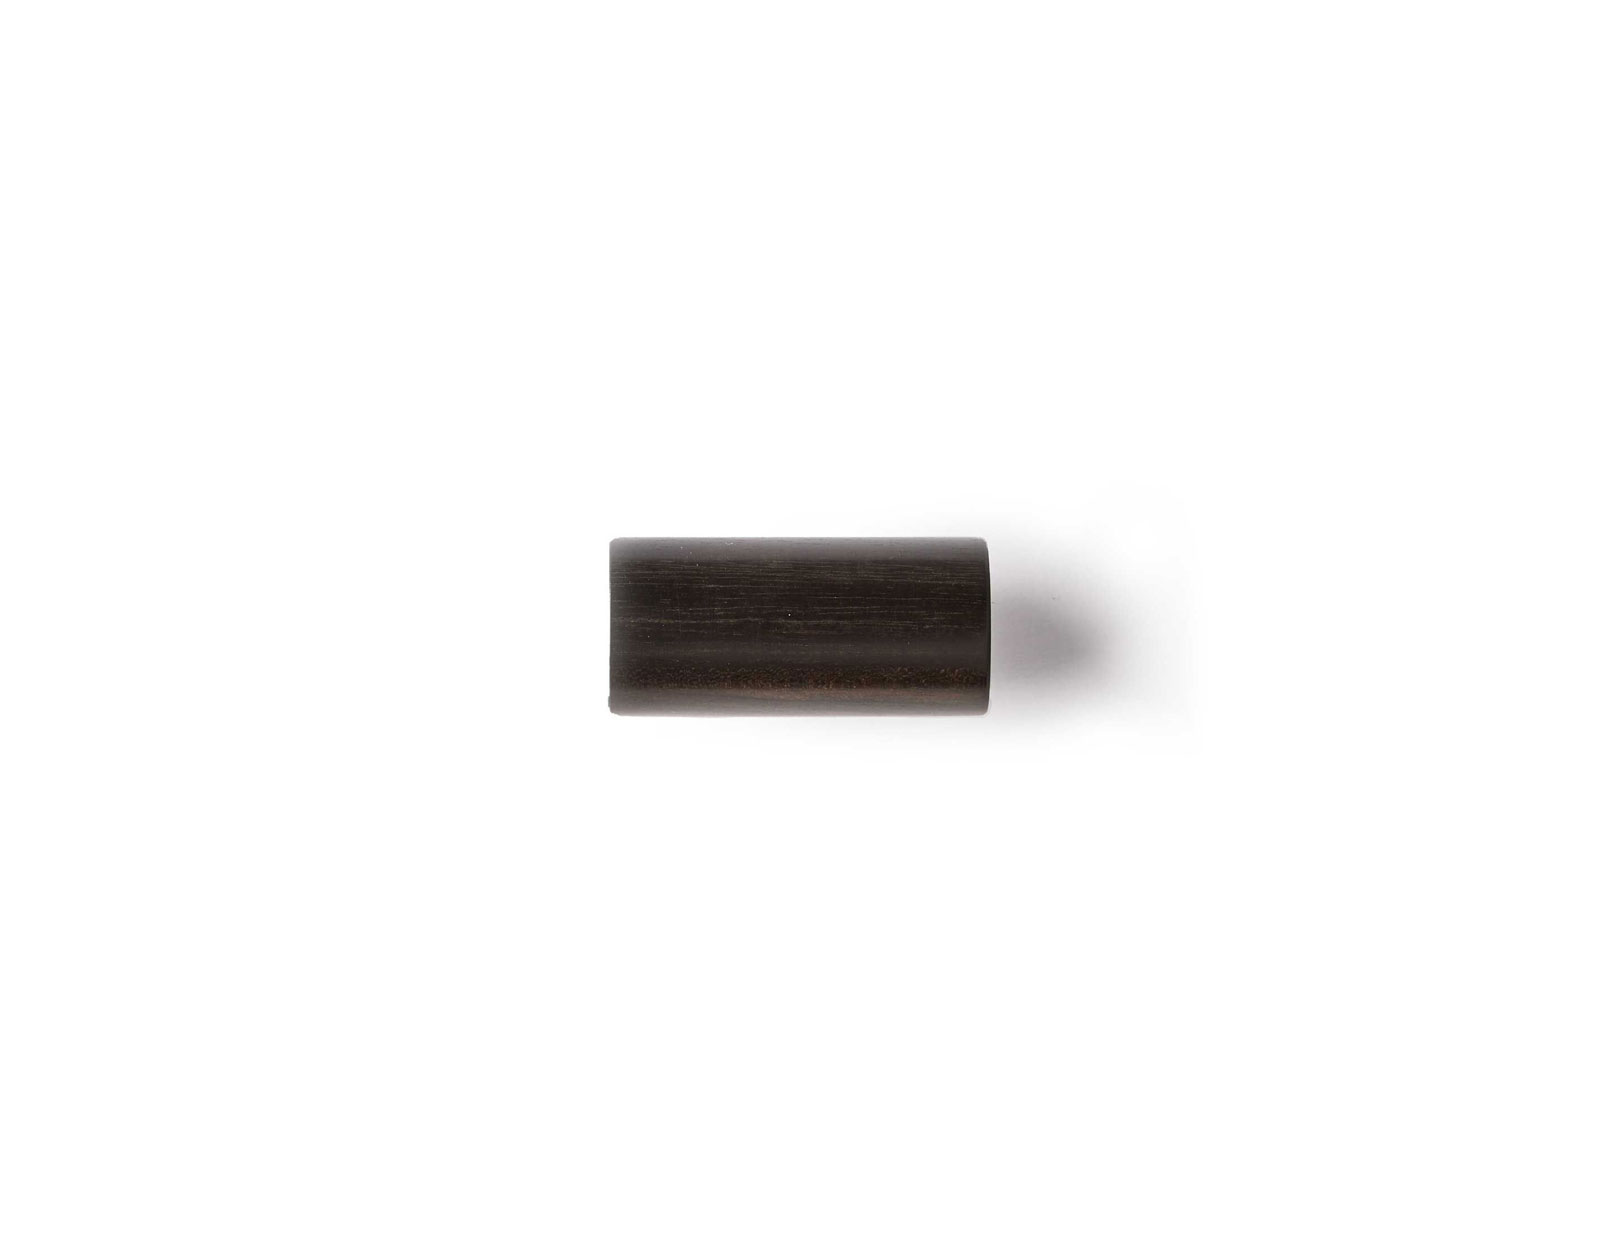 GUITAR SLIDE EBONY SMALL 11/16